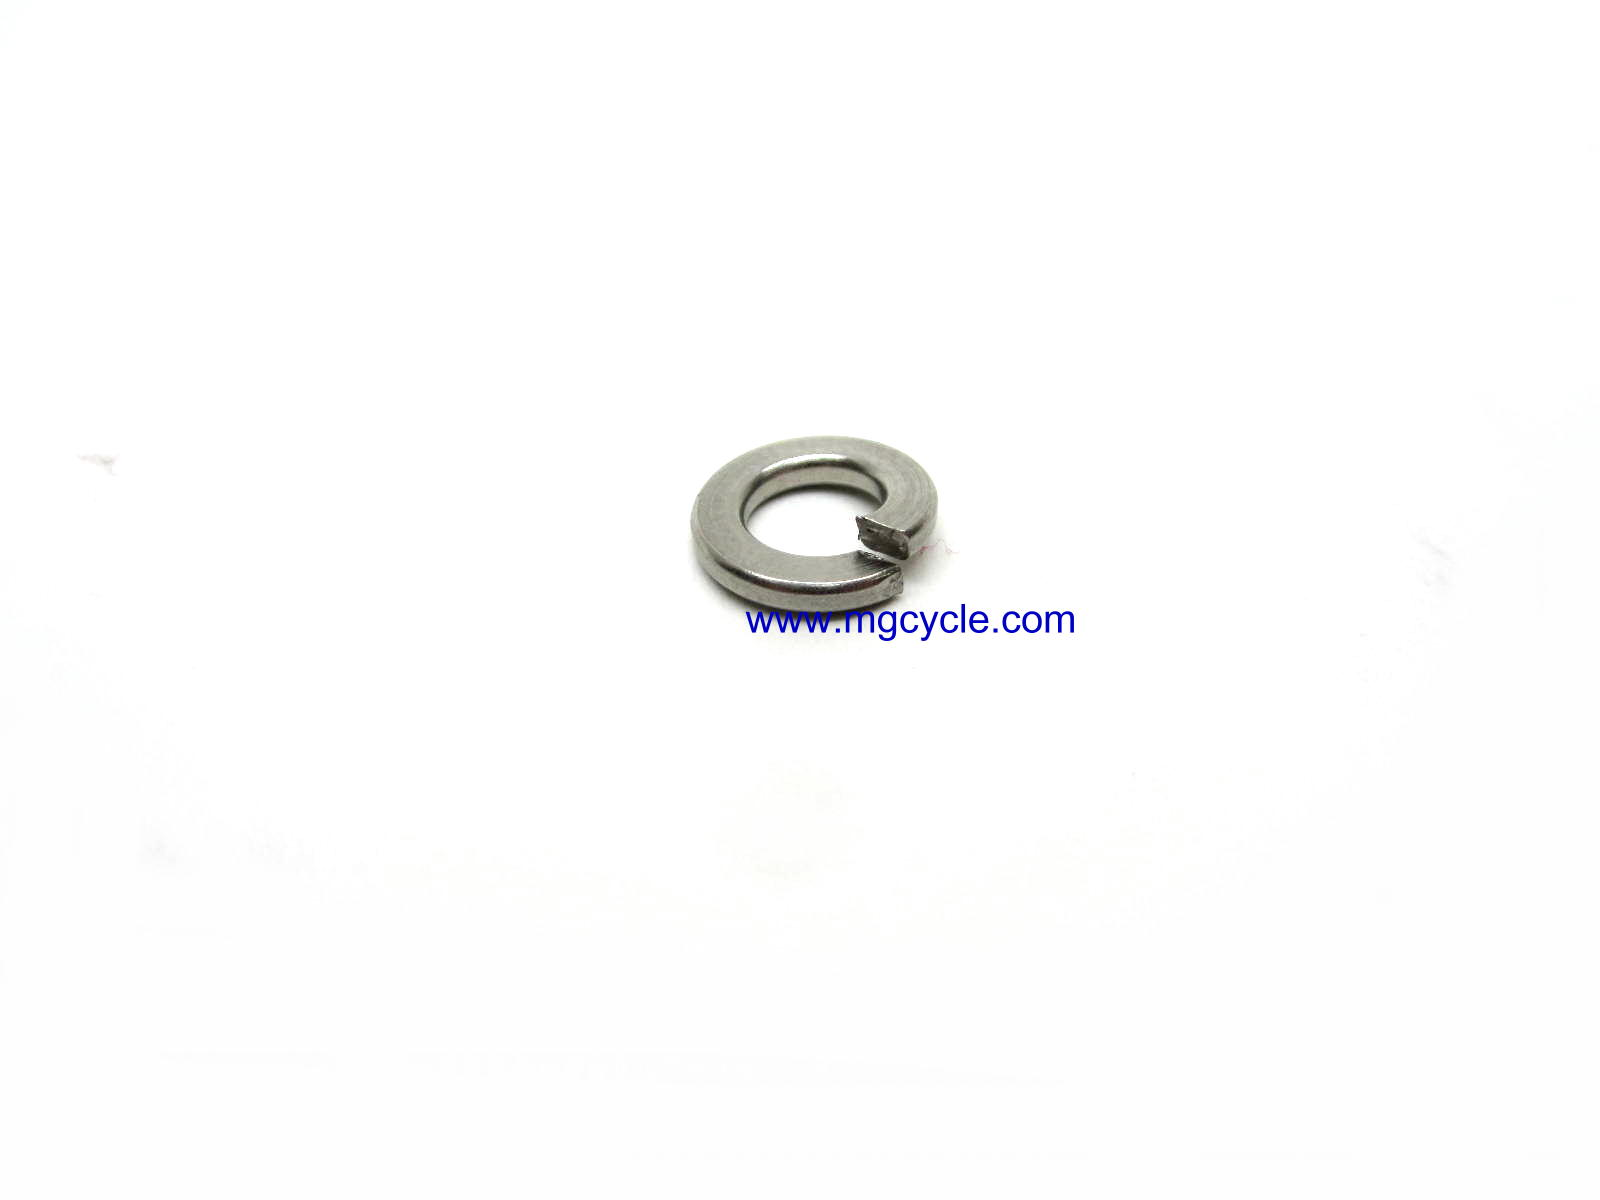 6mm stainless split lock washer